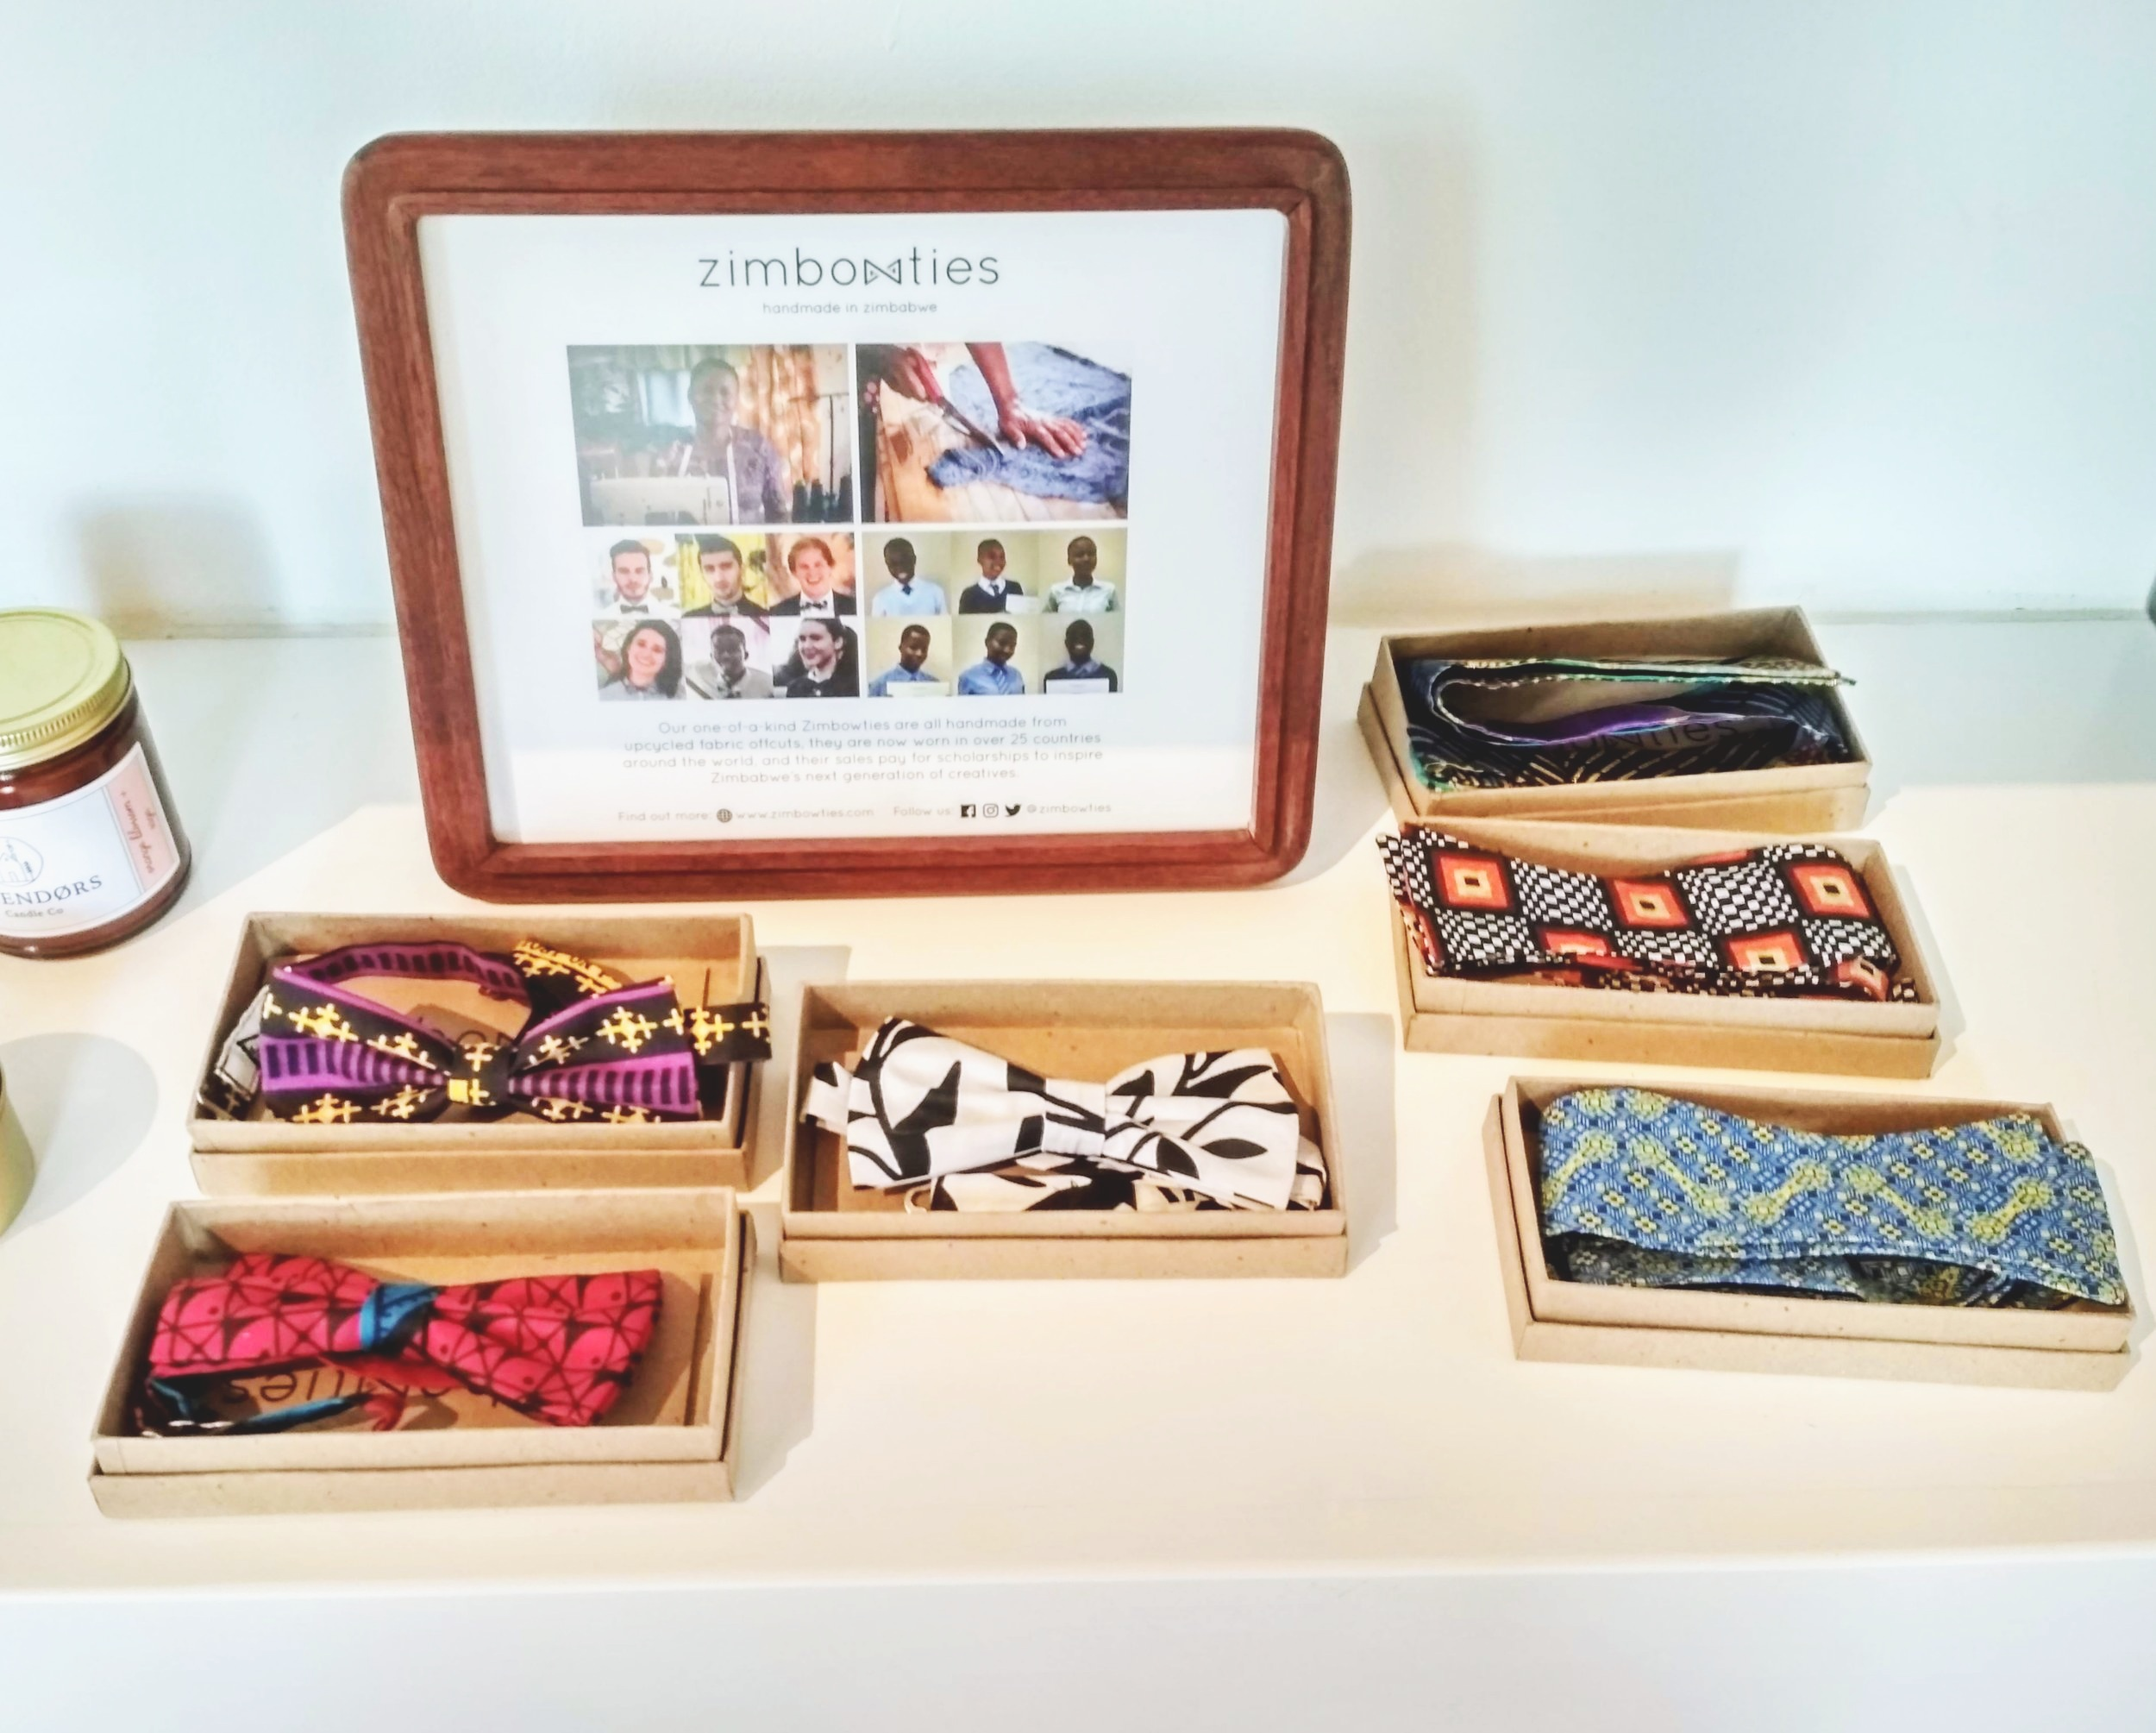 You can now find a selection of Zimbowties at the Boulder Museum of Contemporary Art